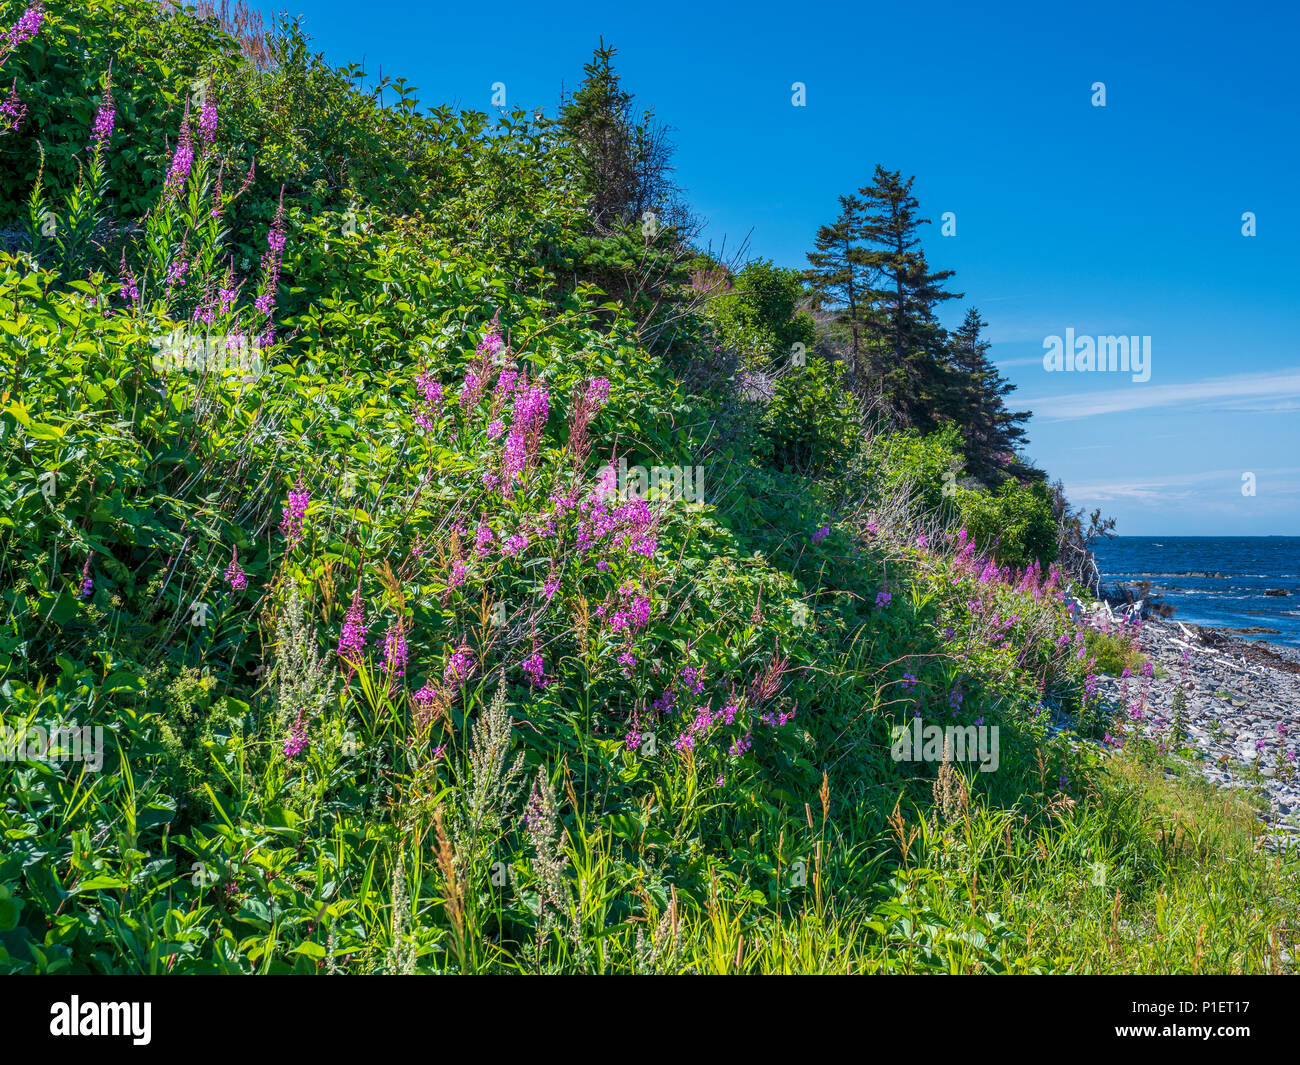 Fireweed blossoms along the roadside, Gaspe Peninsula, Quebec, Canada Stock Photo